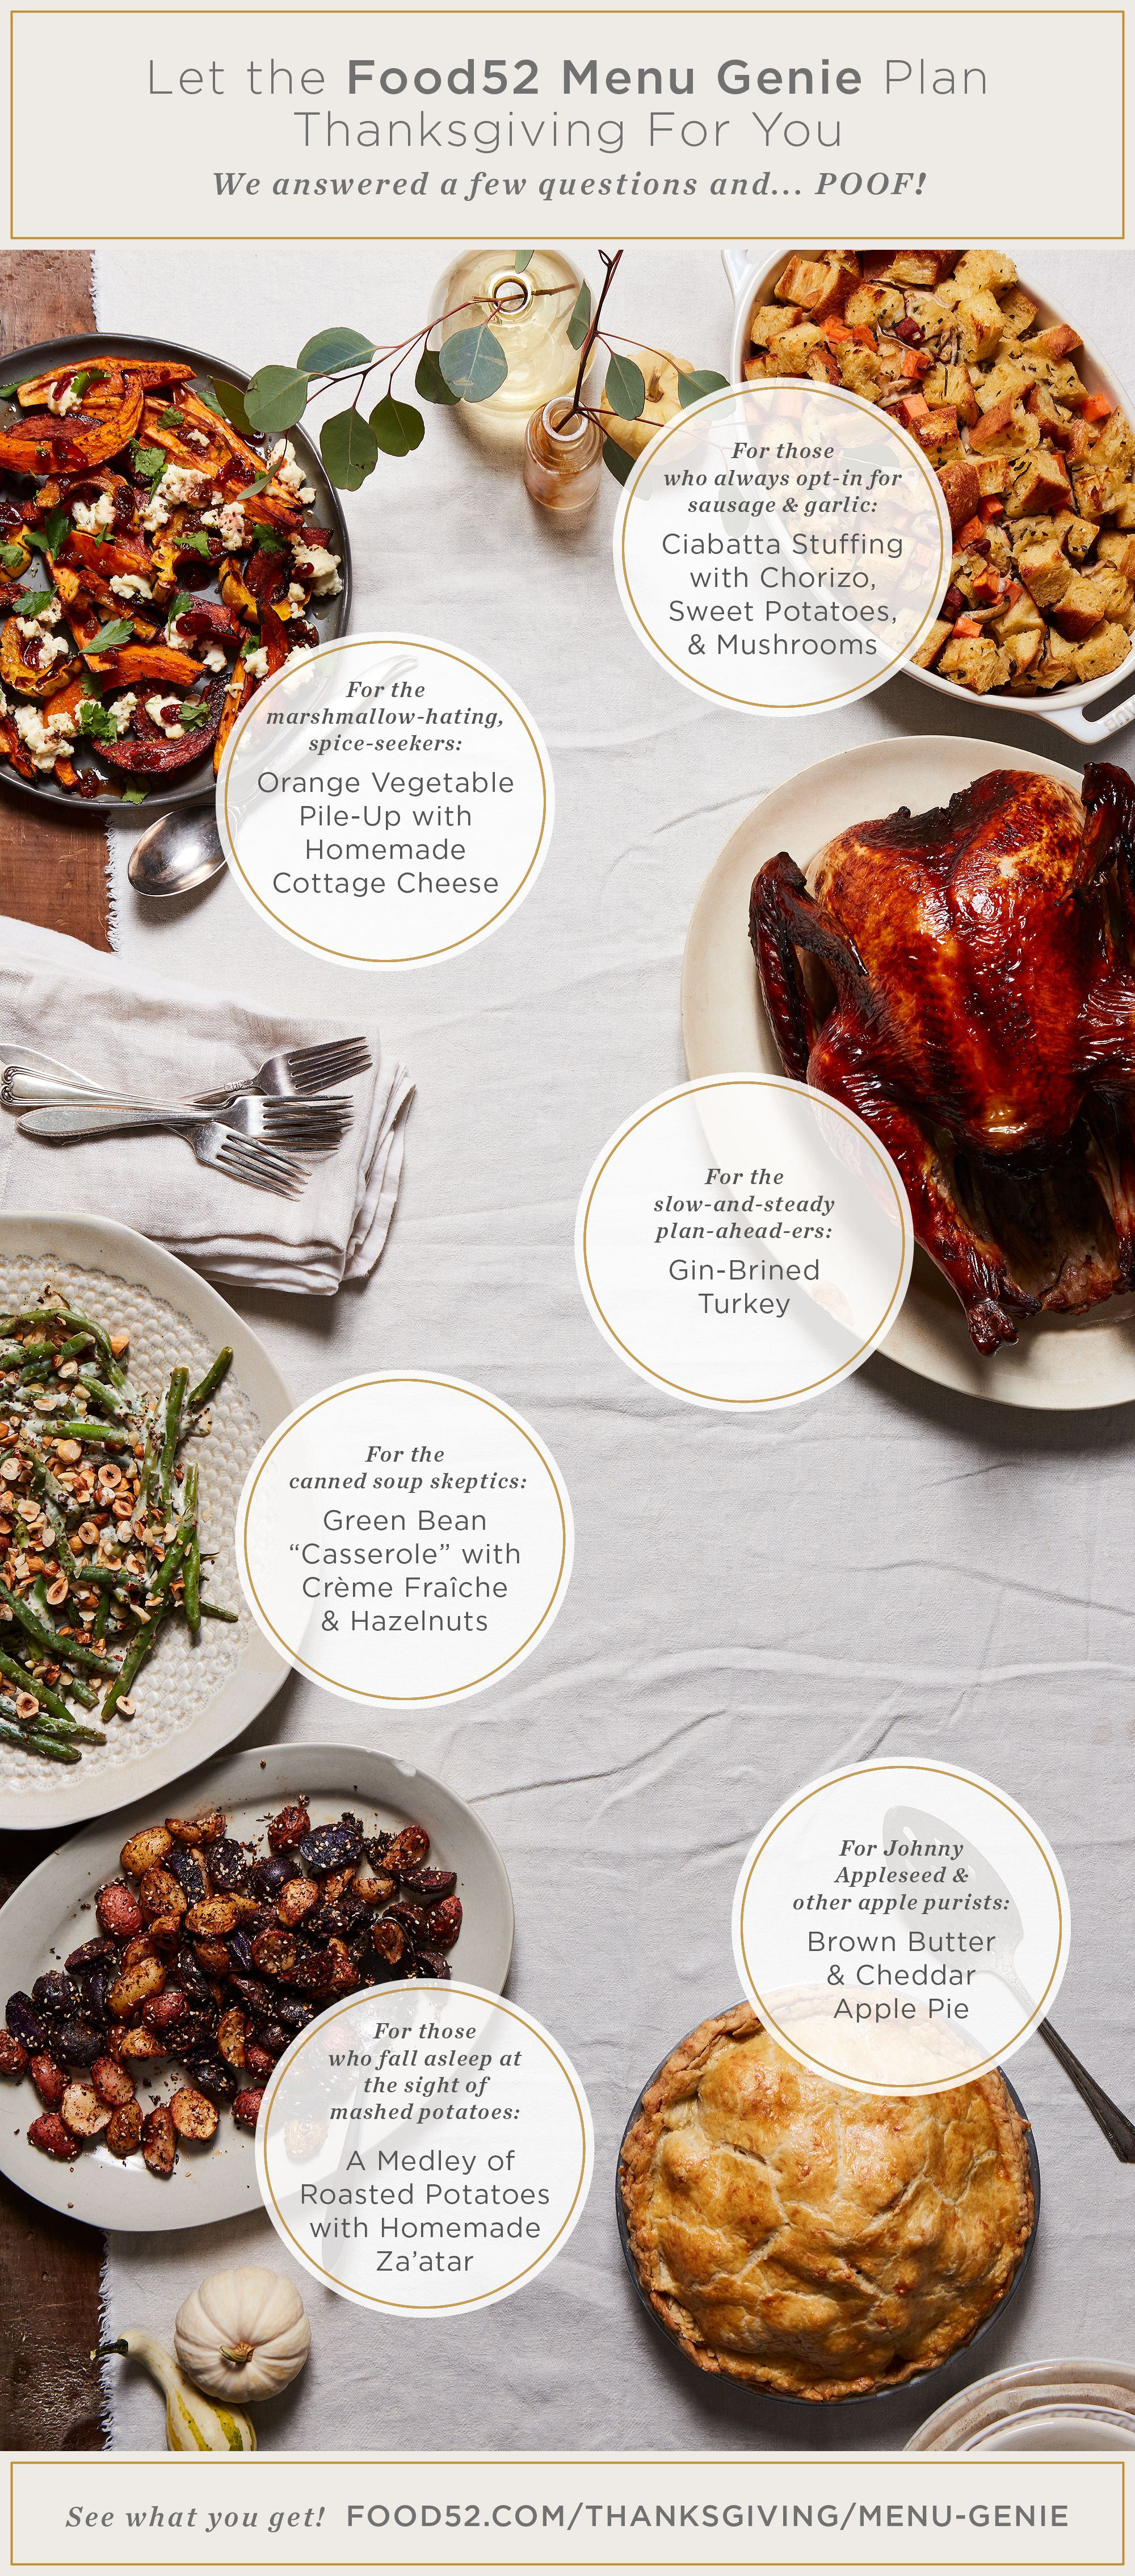 Our Thanksgiving Genie is here to make your holiday menu a